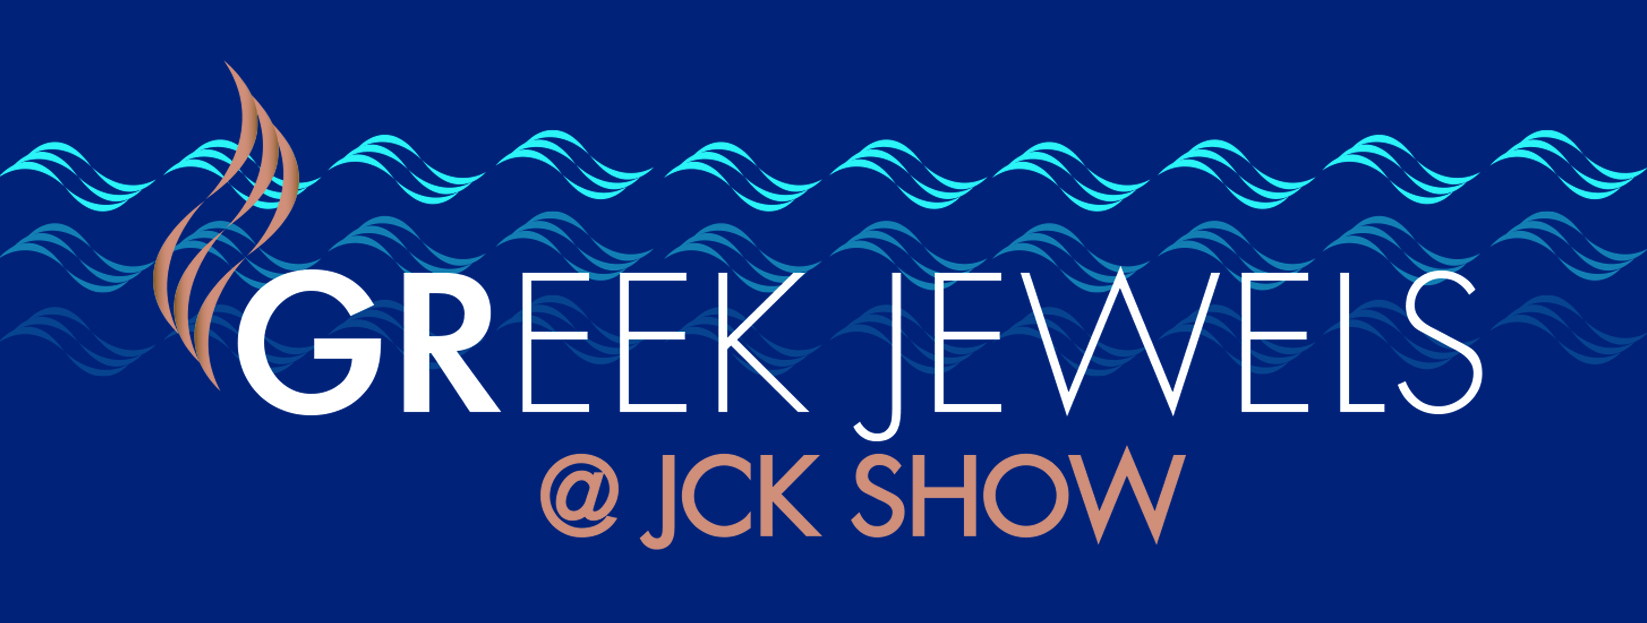 Greek Jewels at JCK Logo Blue